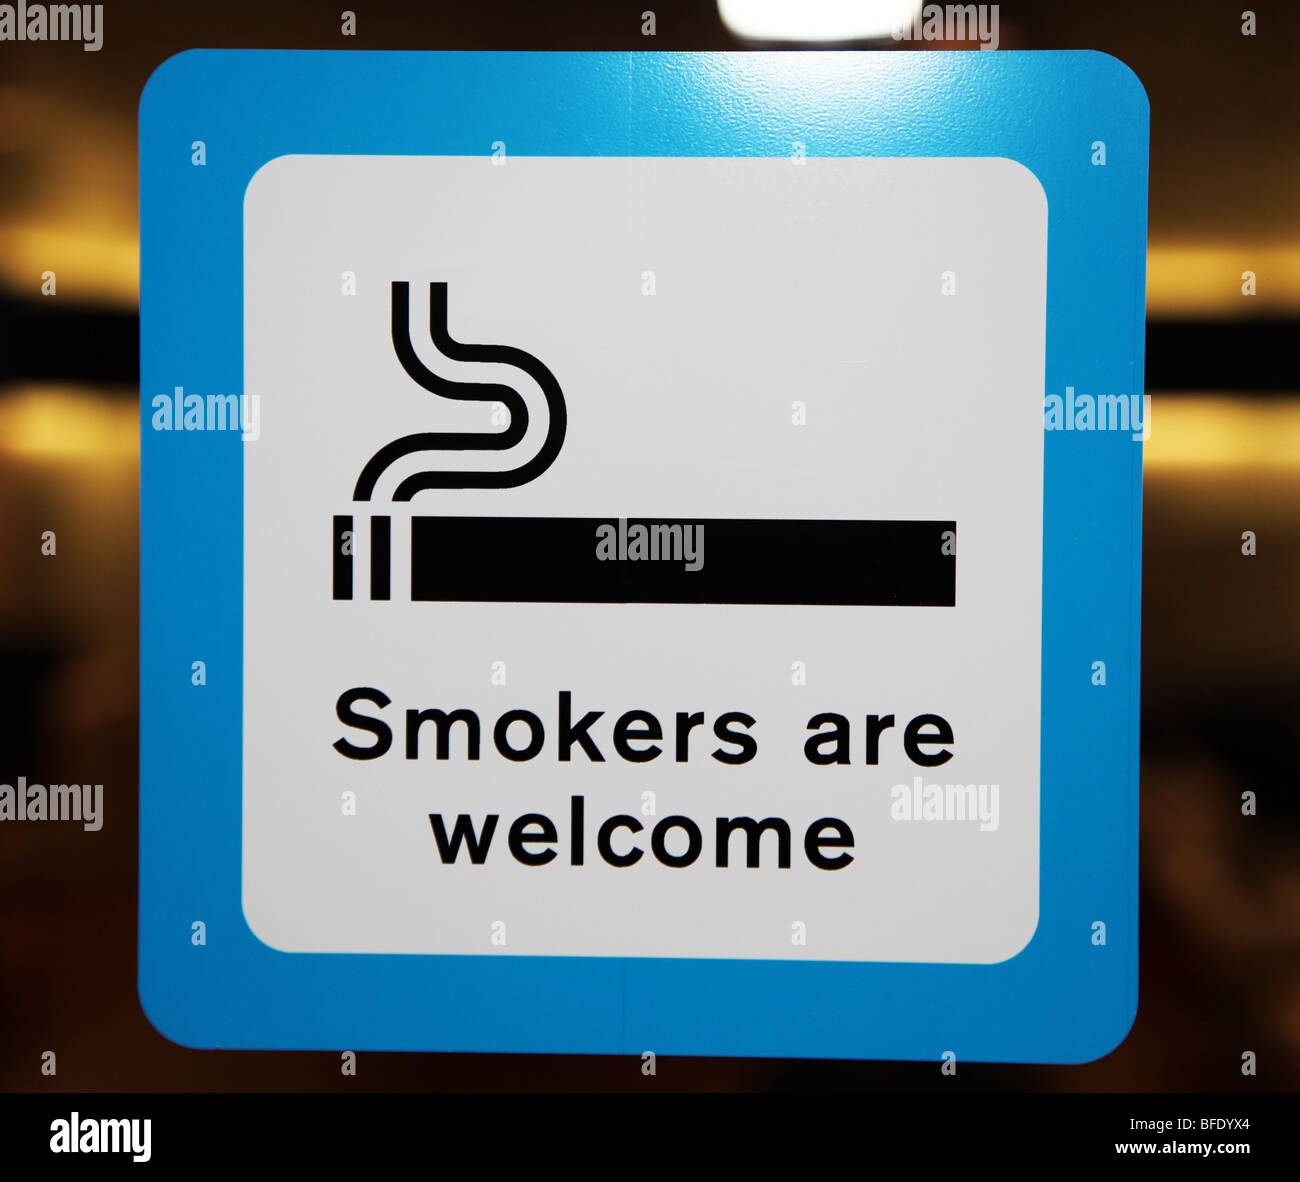 Smokers are Welcome sign, Zurich Airport Smoking lounge - Stock Image